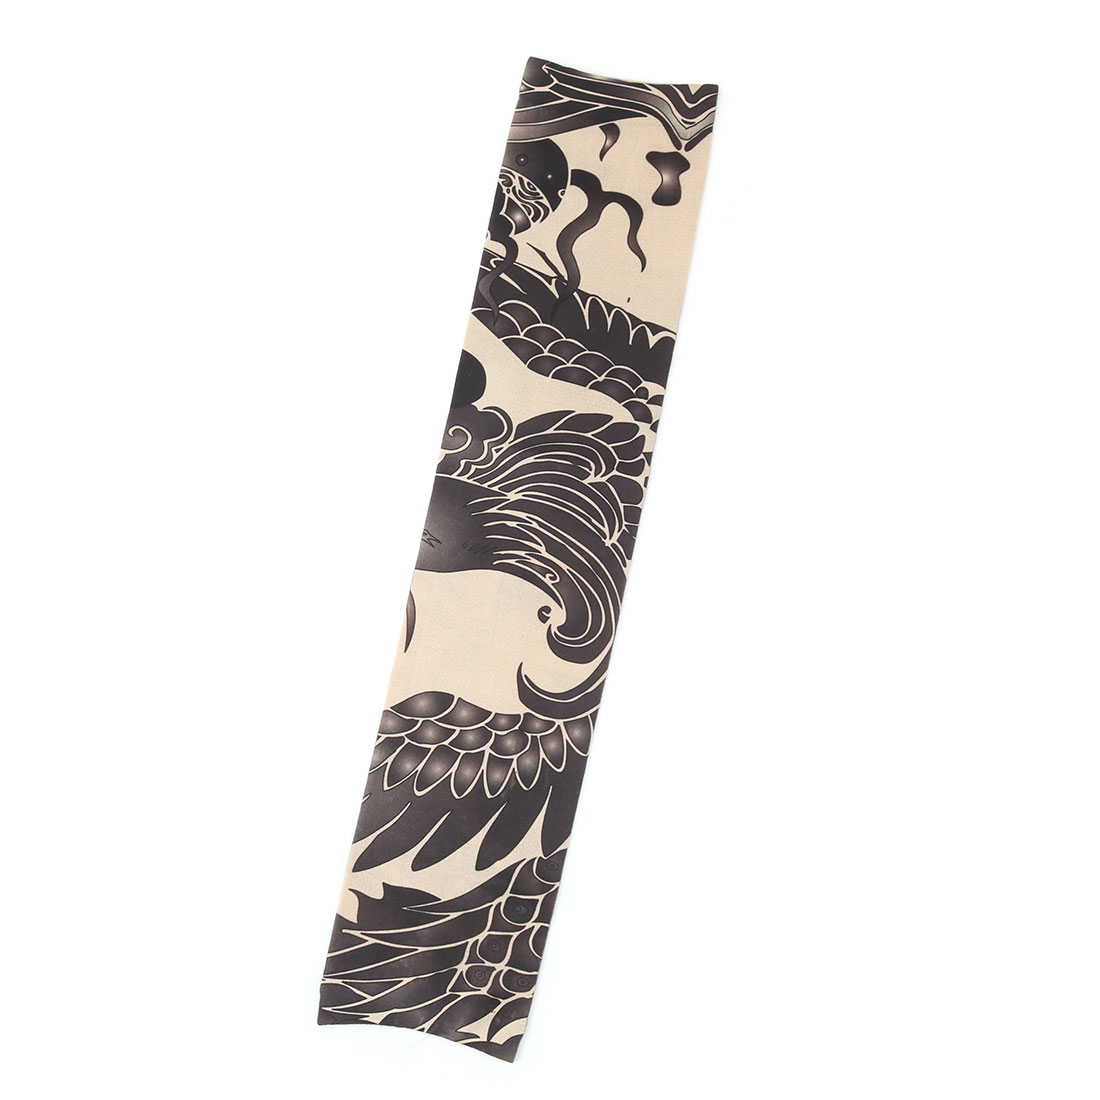 Outdoor Nylon Bird Pattern Riding Cycling Running Stretchy Arm Cover Protector Sleeve